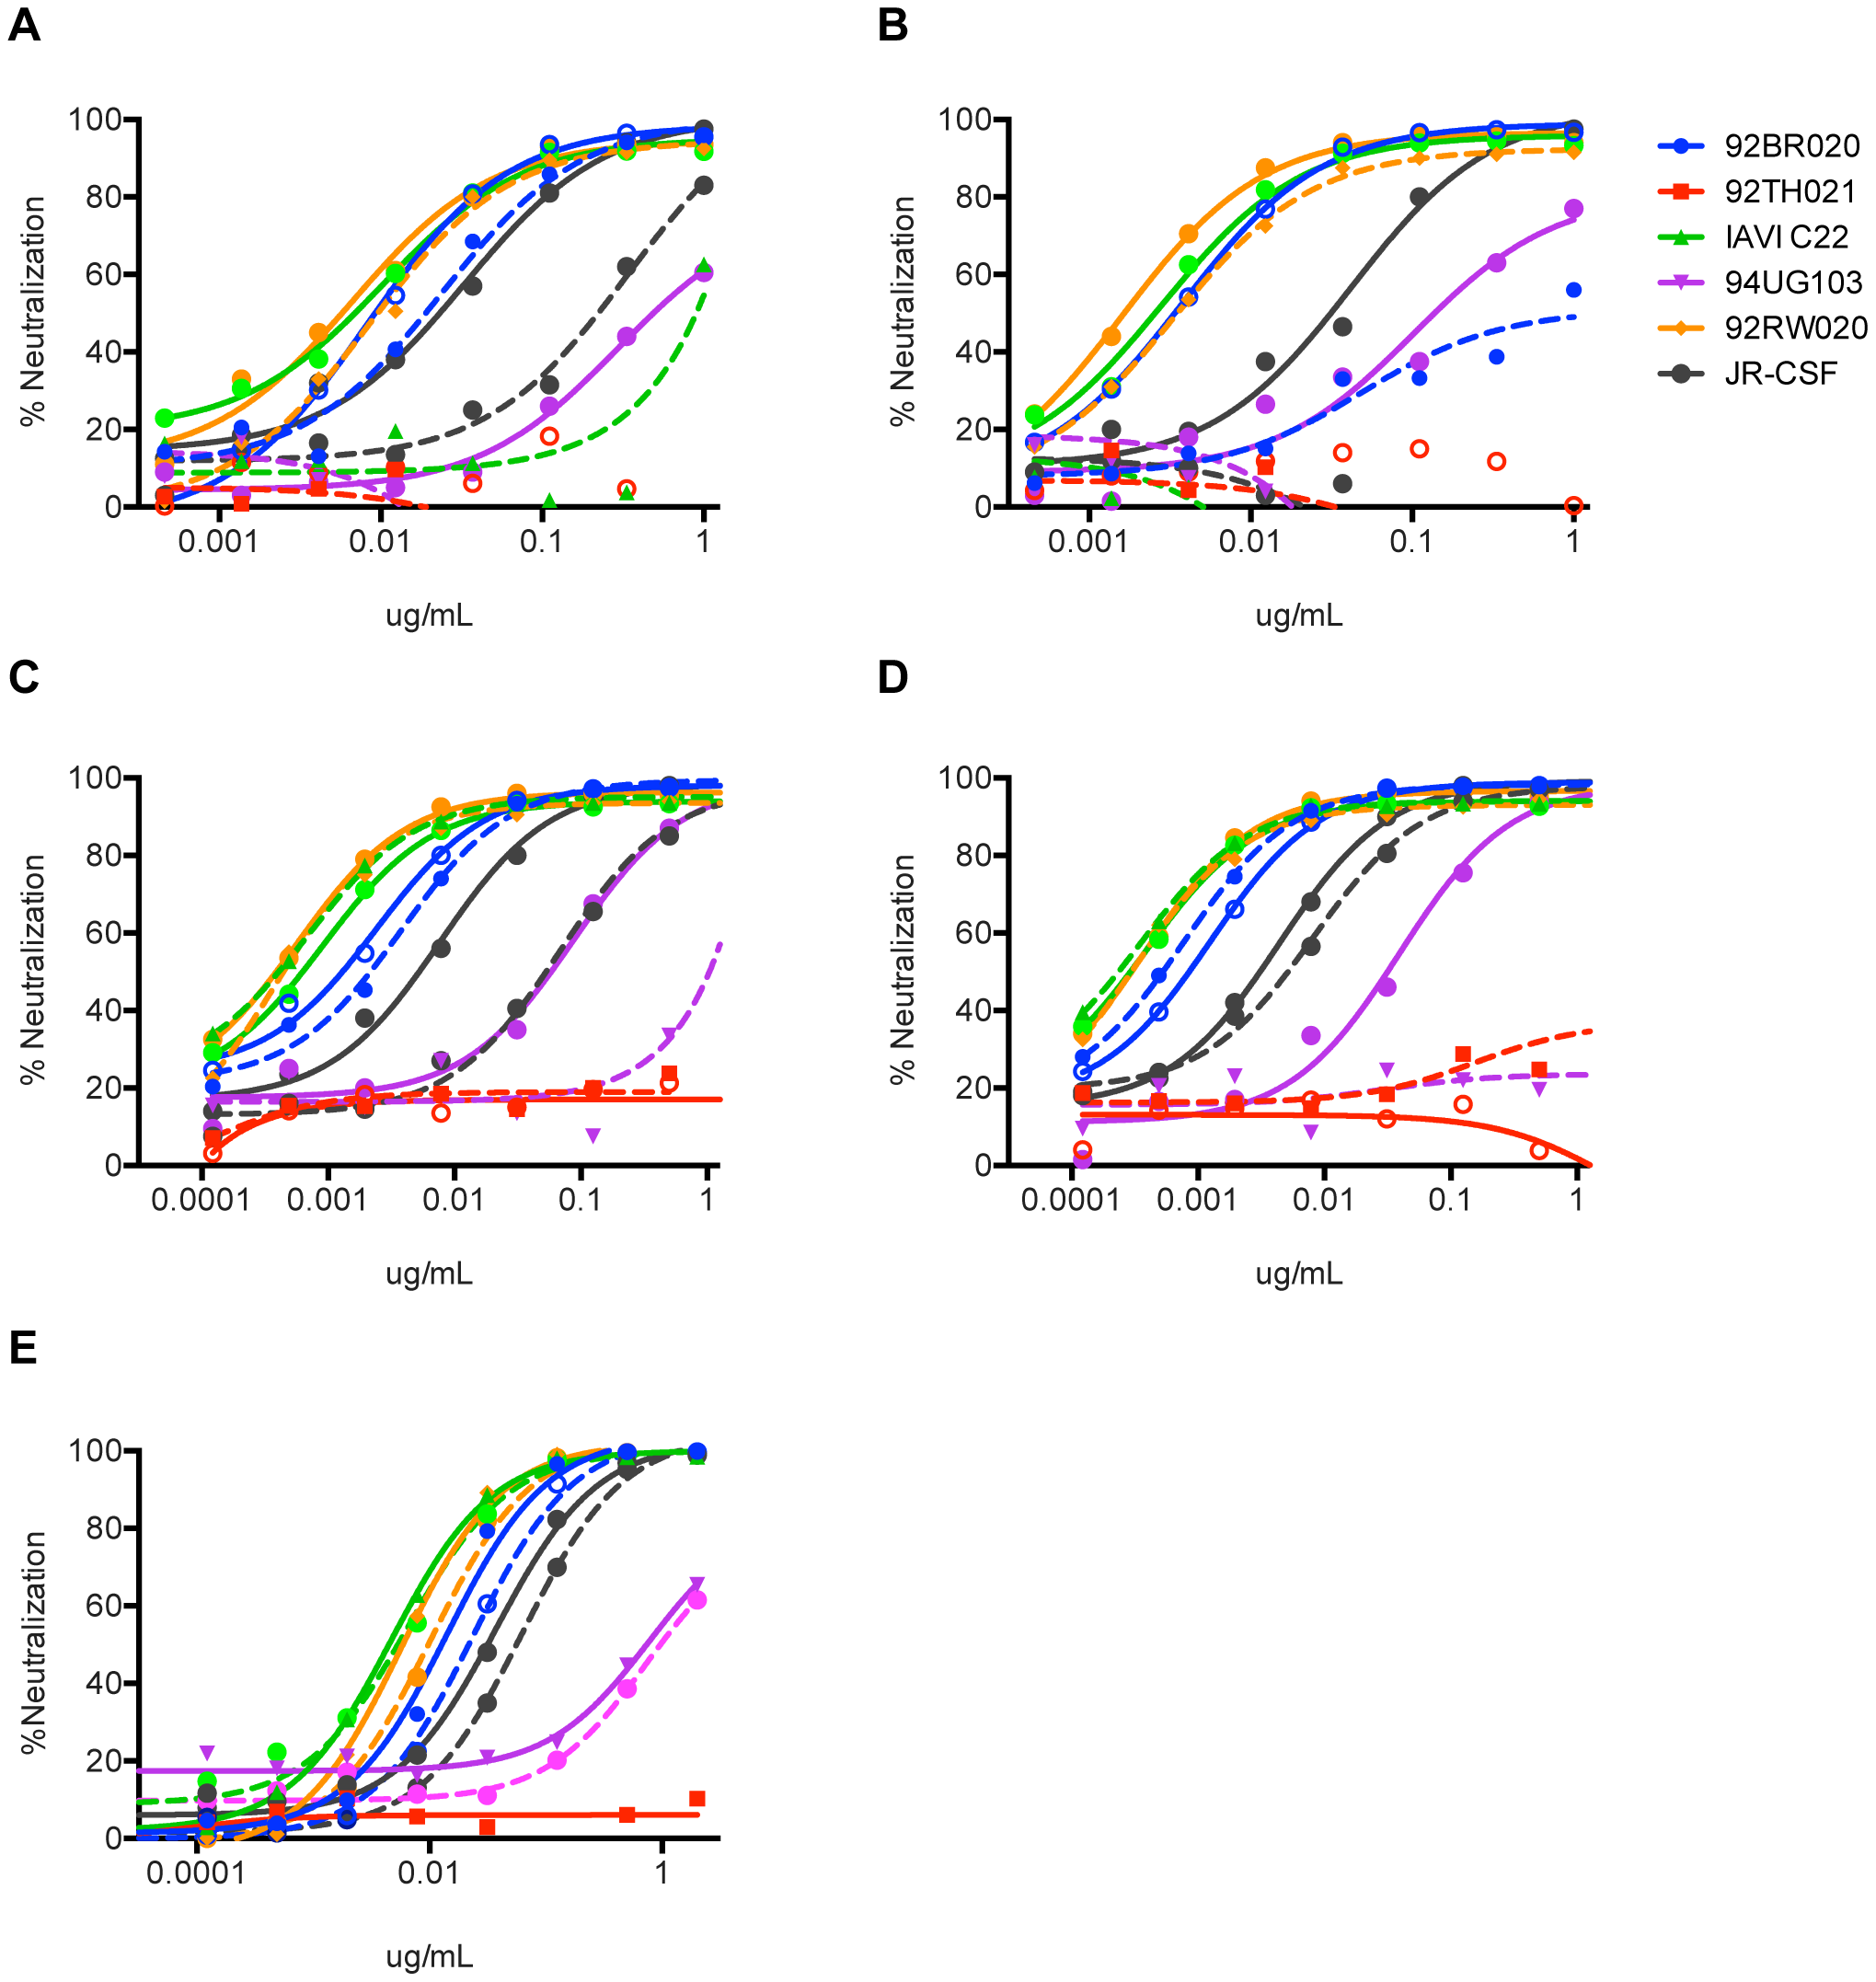 Neutralization activity of PGT122–133 mAbs without the FRL3 insertion and restoring the N-terminus deletion.